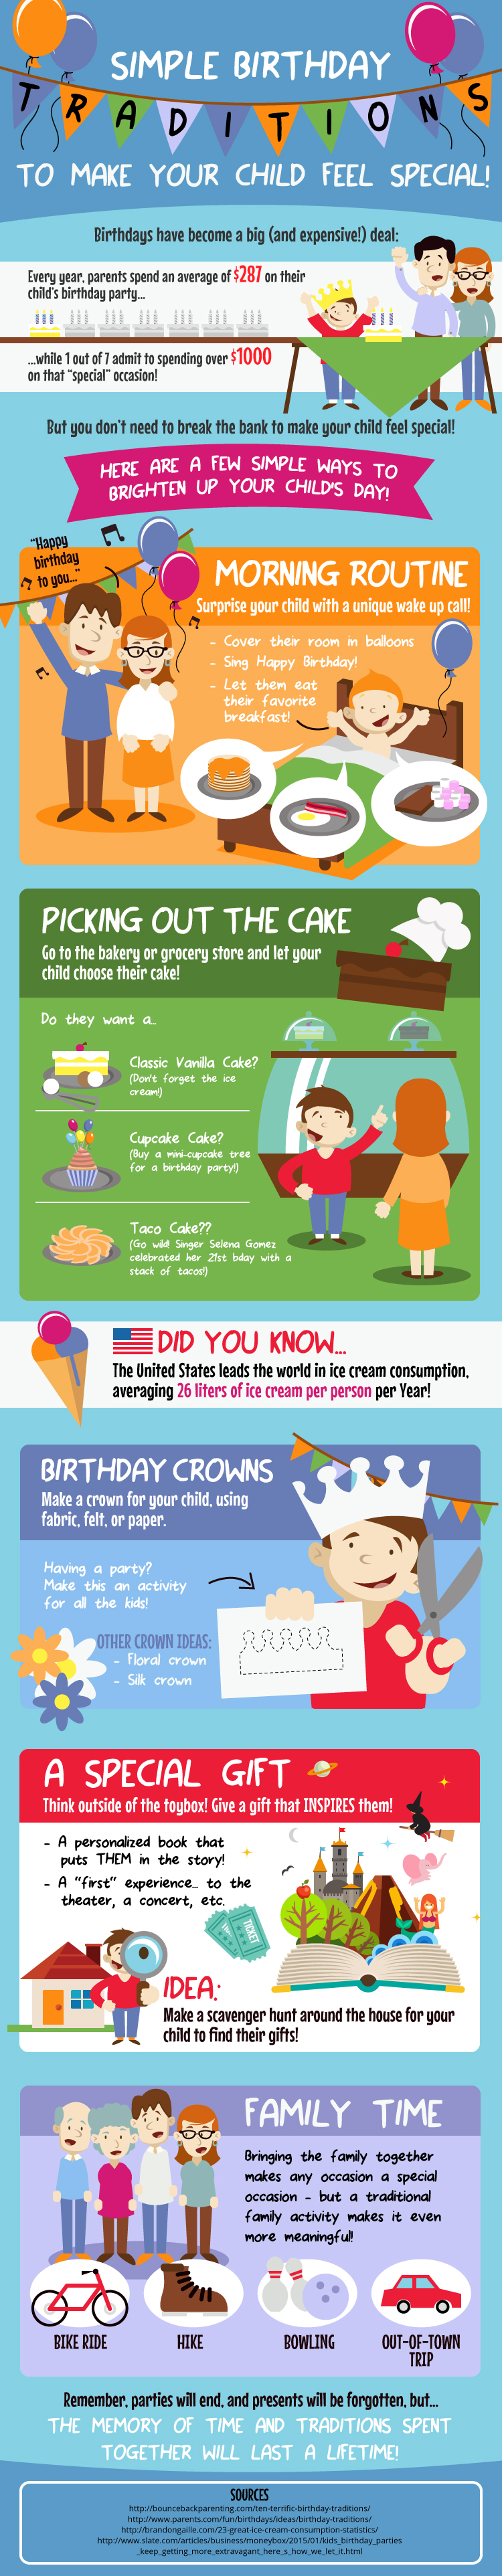 Simple & Unique Birthday Traditions